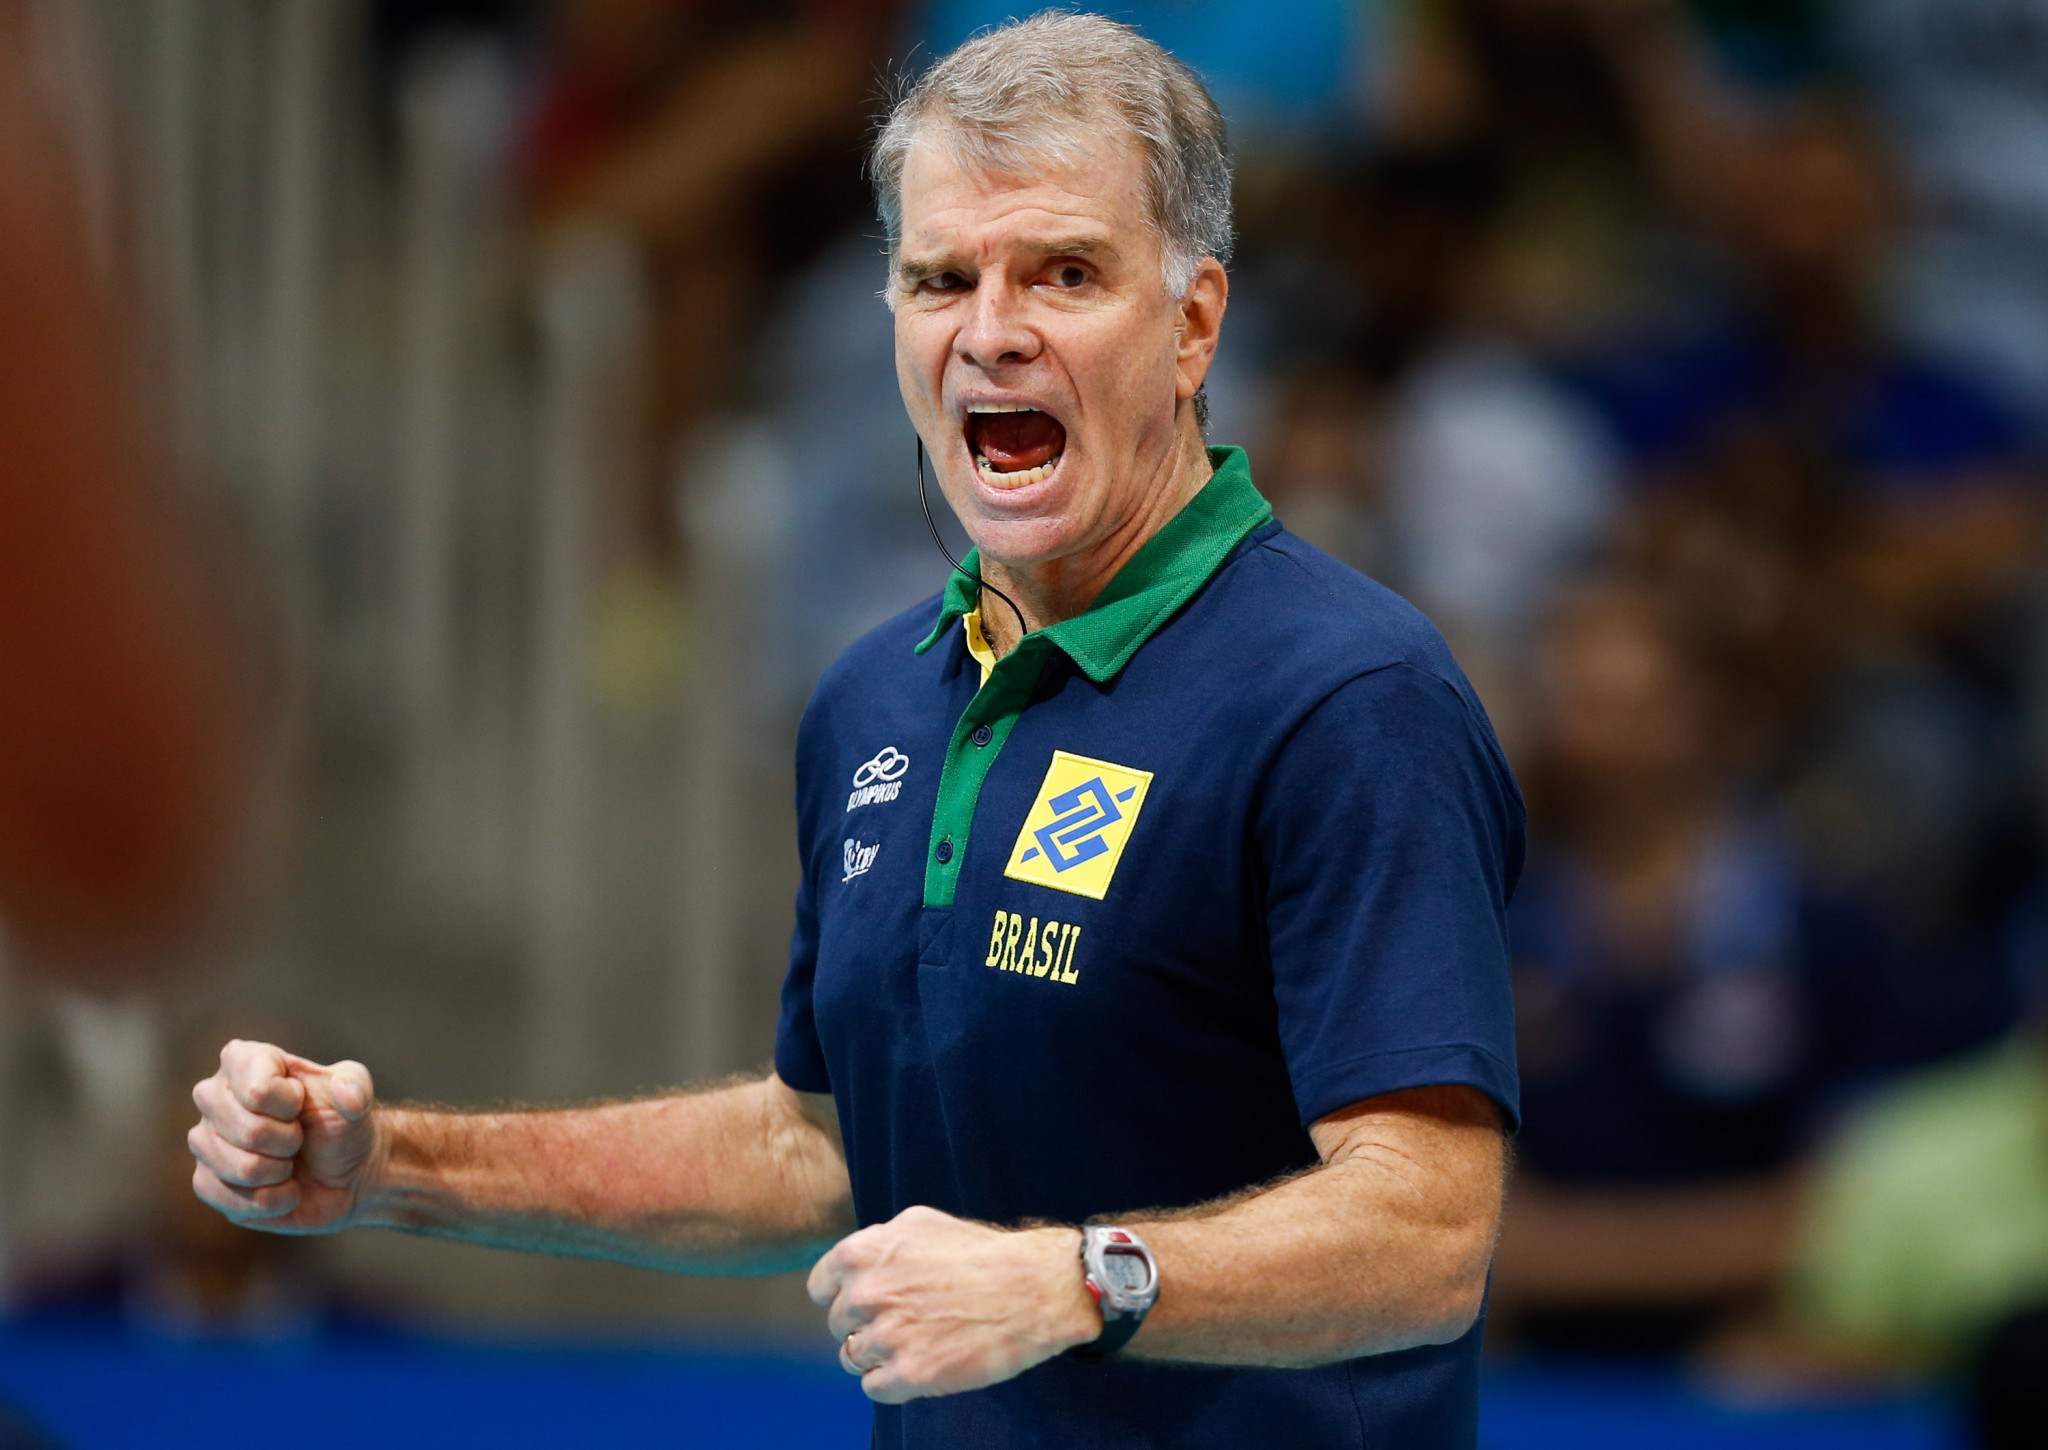 Bernardinho named as coach of French men's volleyball team with goal of gold medal at Paris 2024